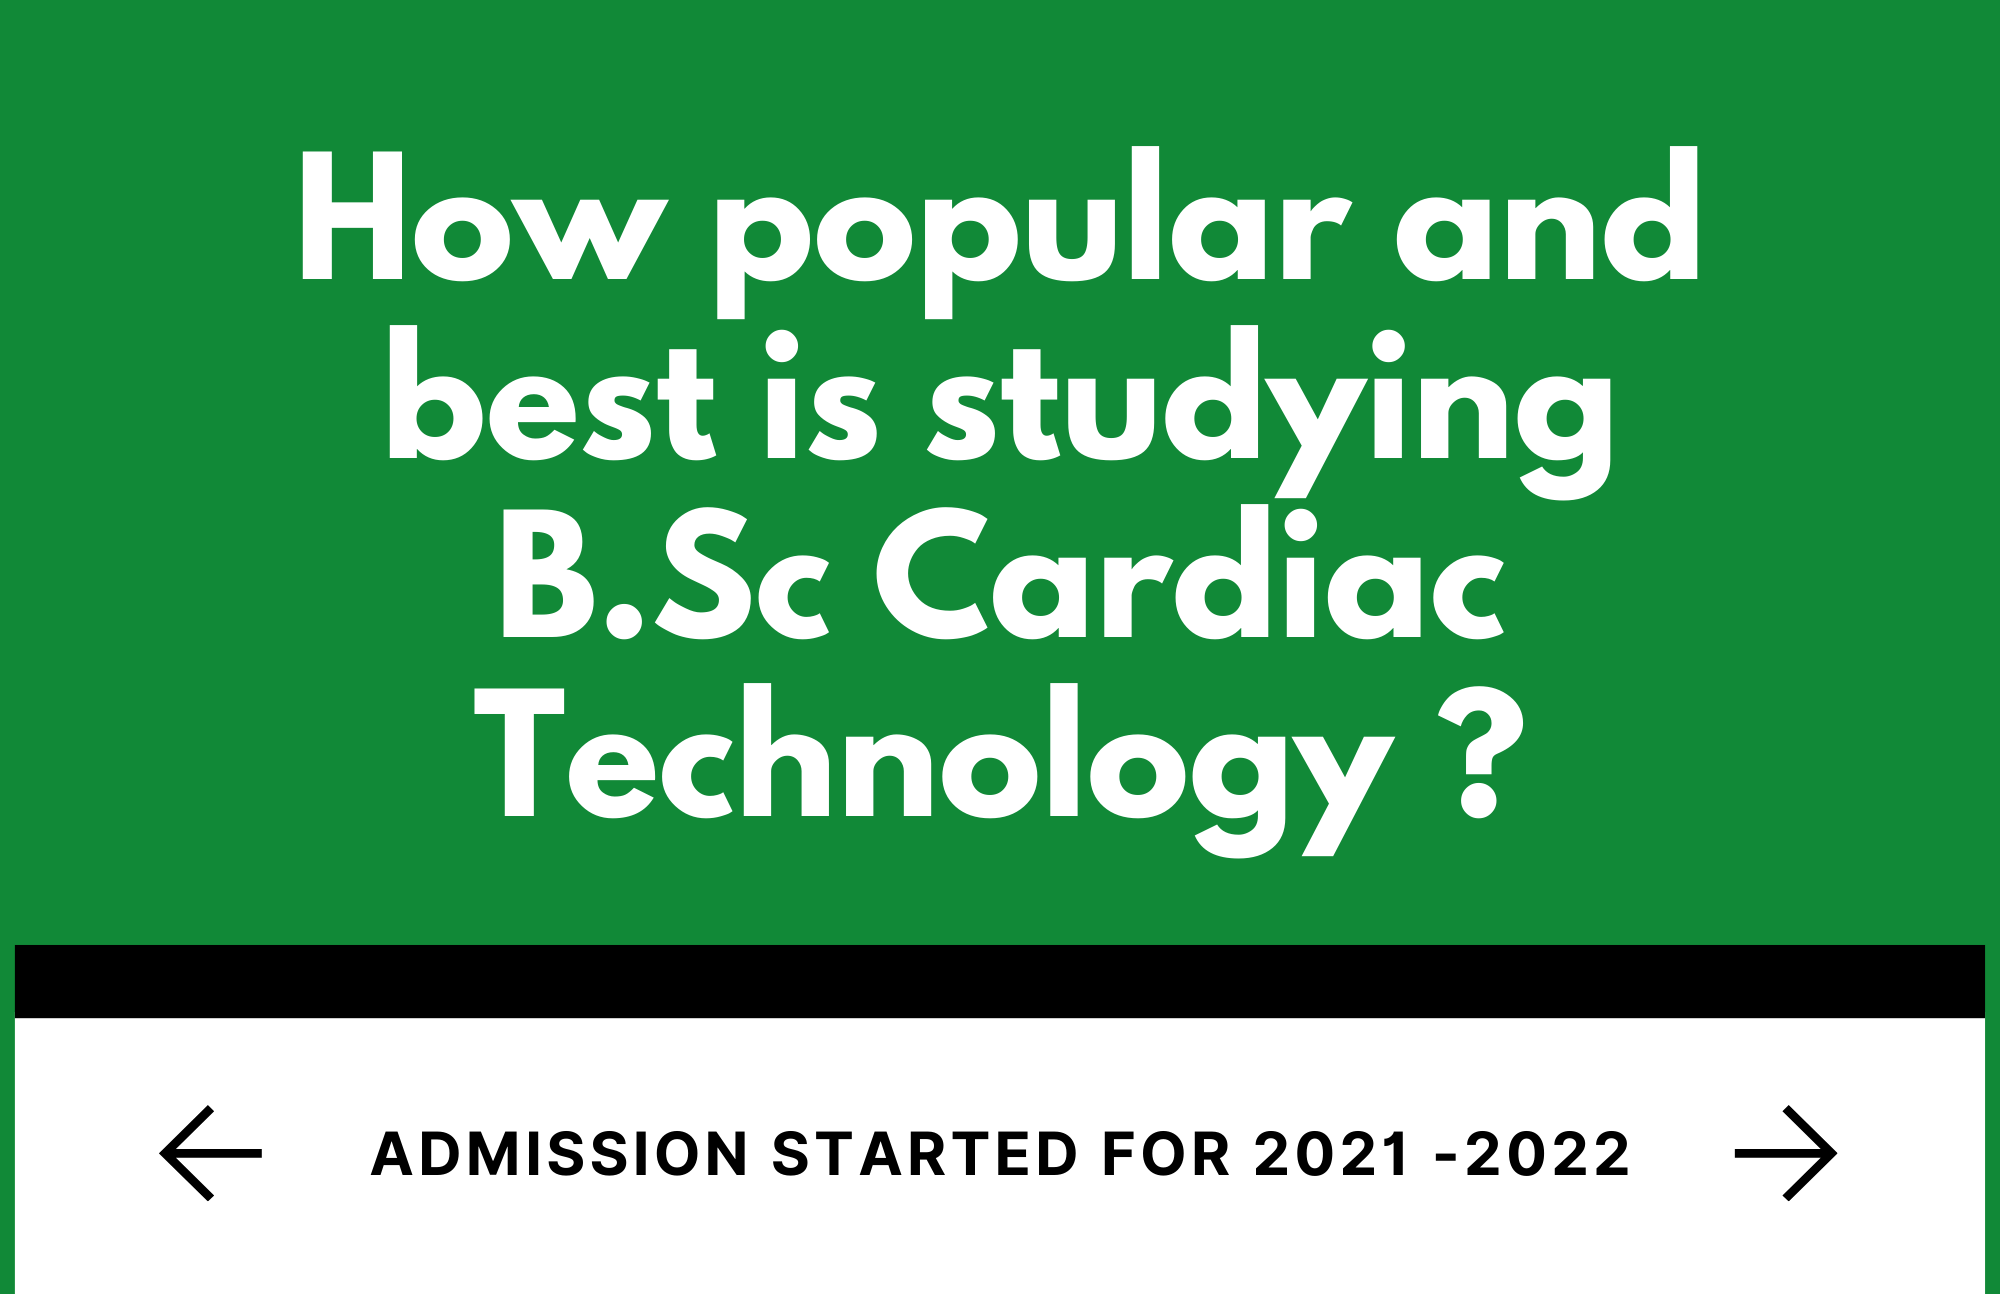 How popular and best is studying B.Sc Cardiac Technology